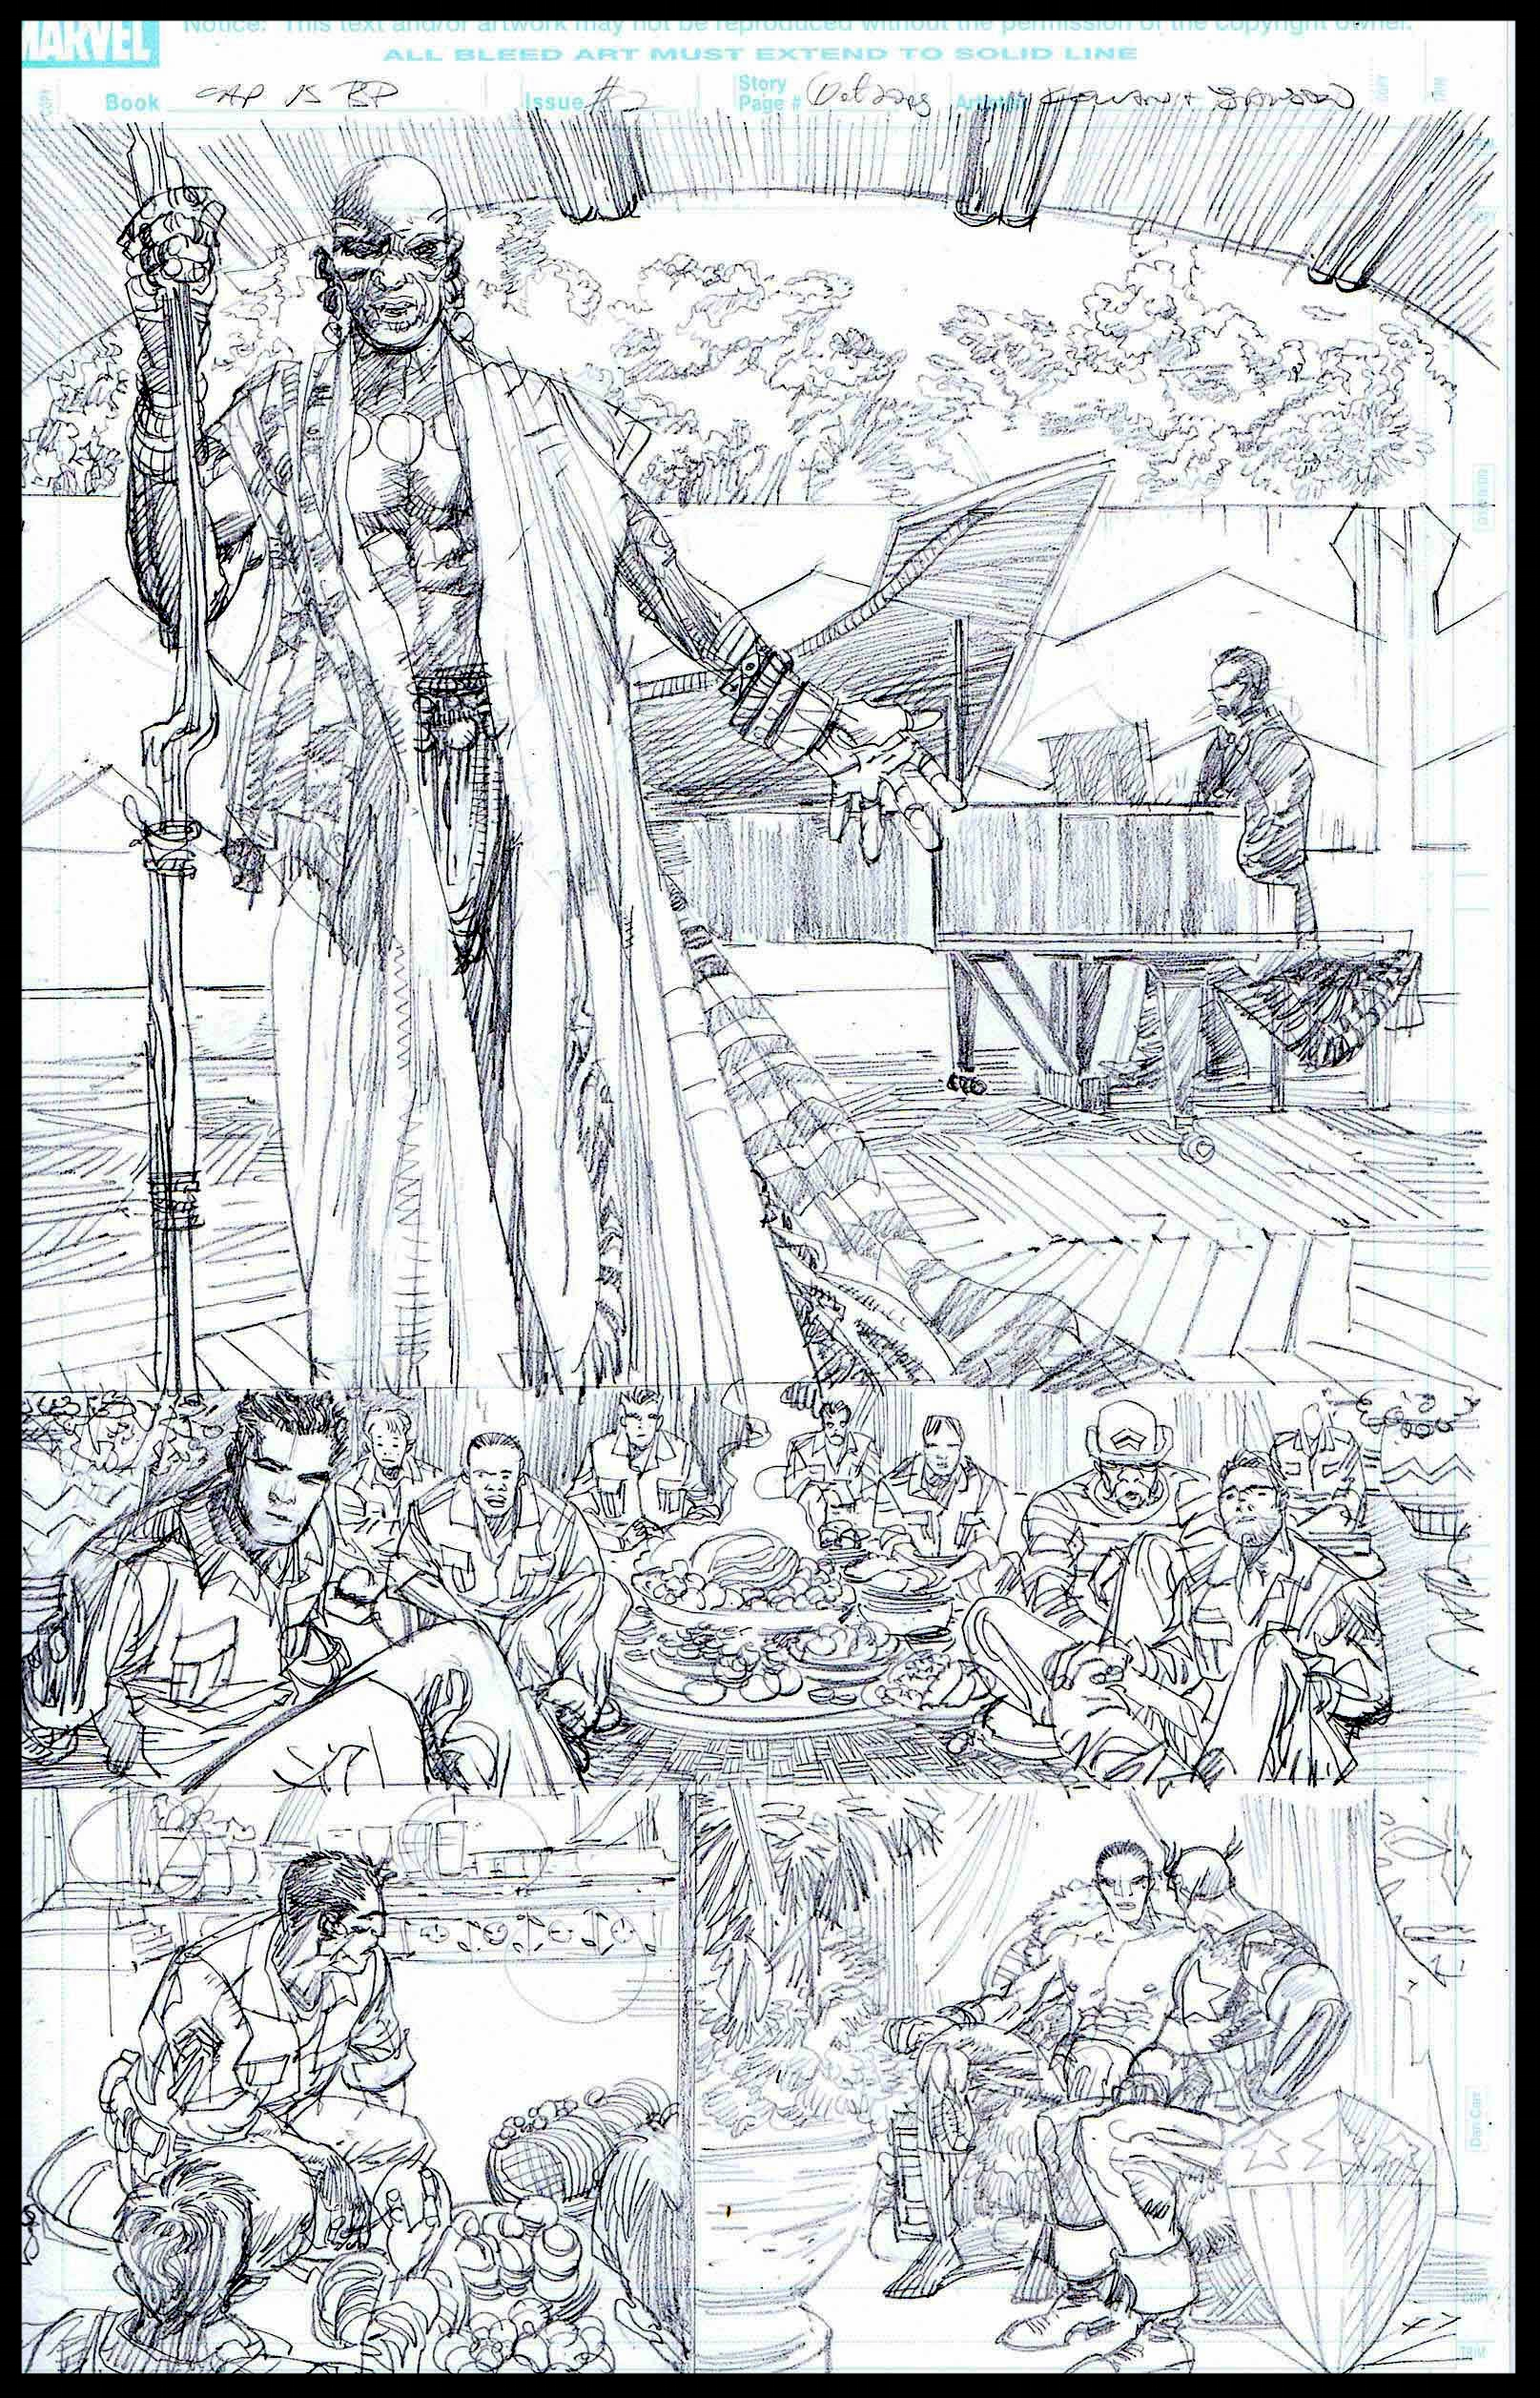 Flags of Our Fathers #2 - Page 1 - Pencils